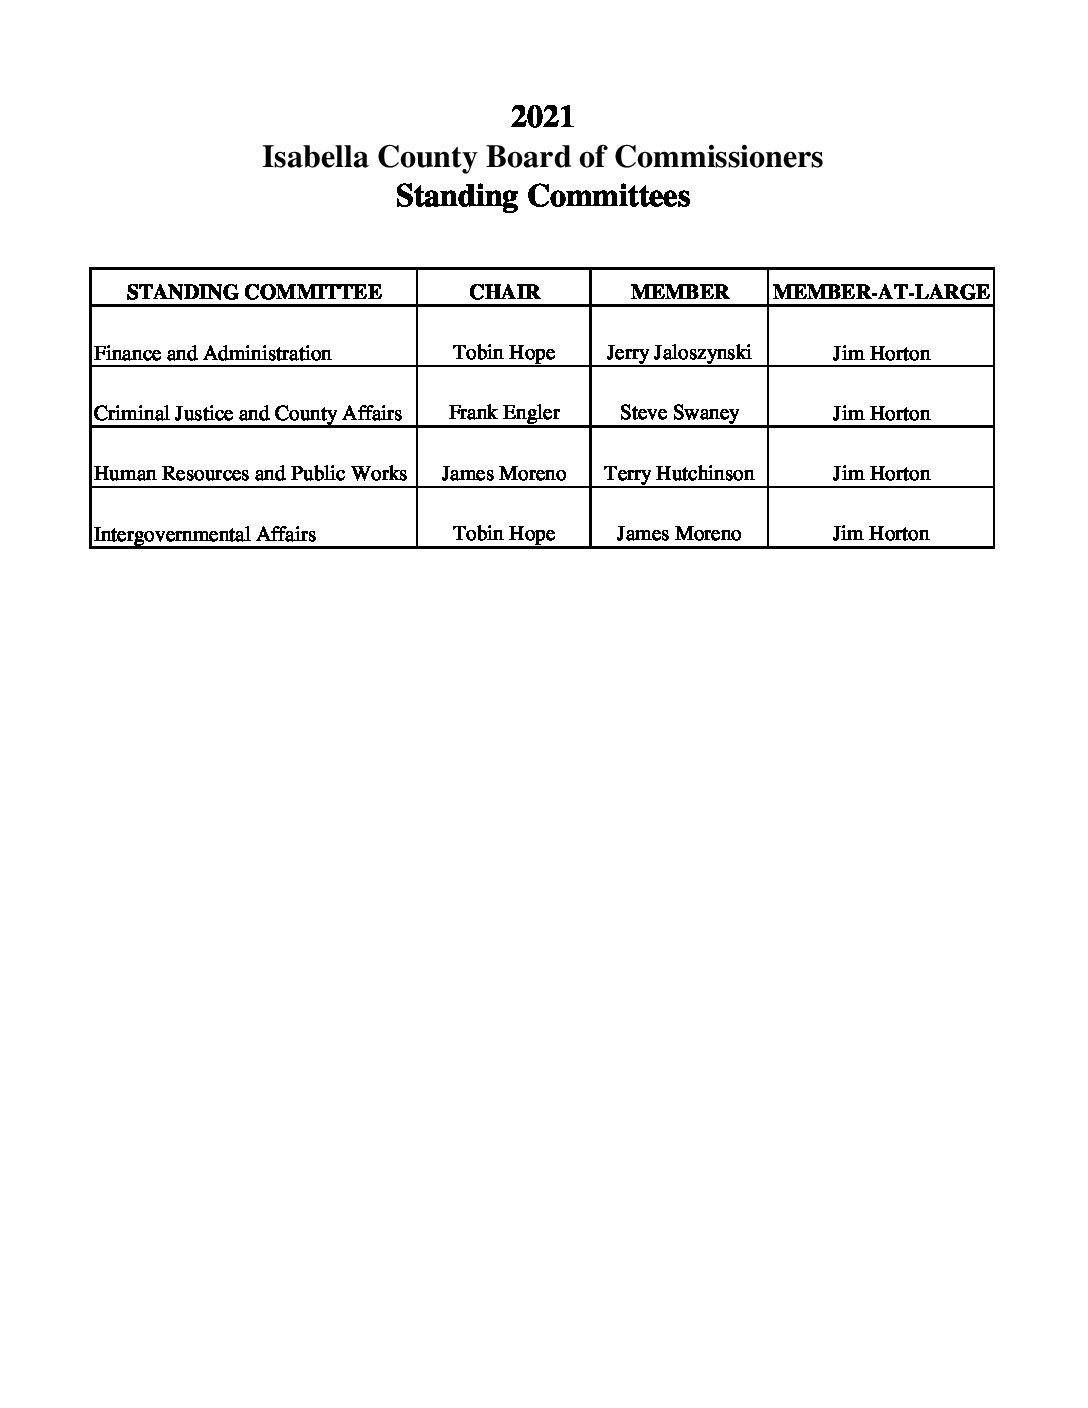 preview image of first page Board of Commissioners Standing Committees